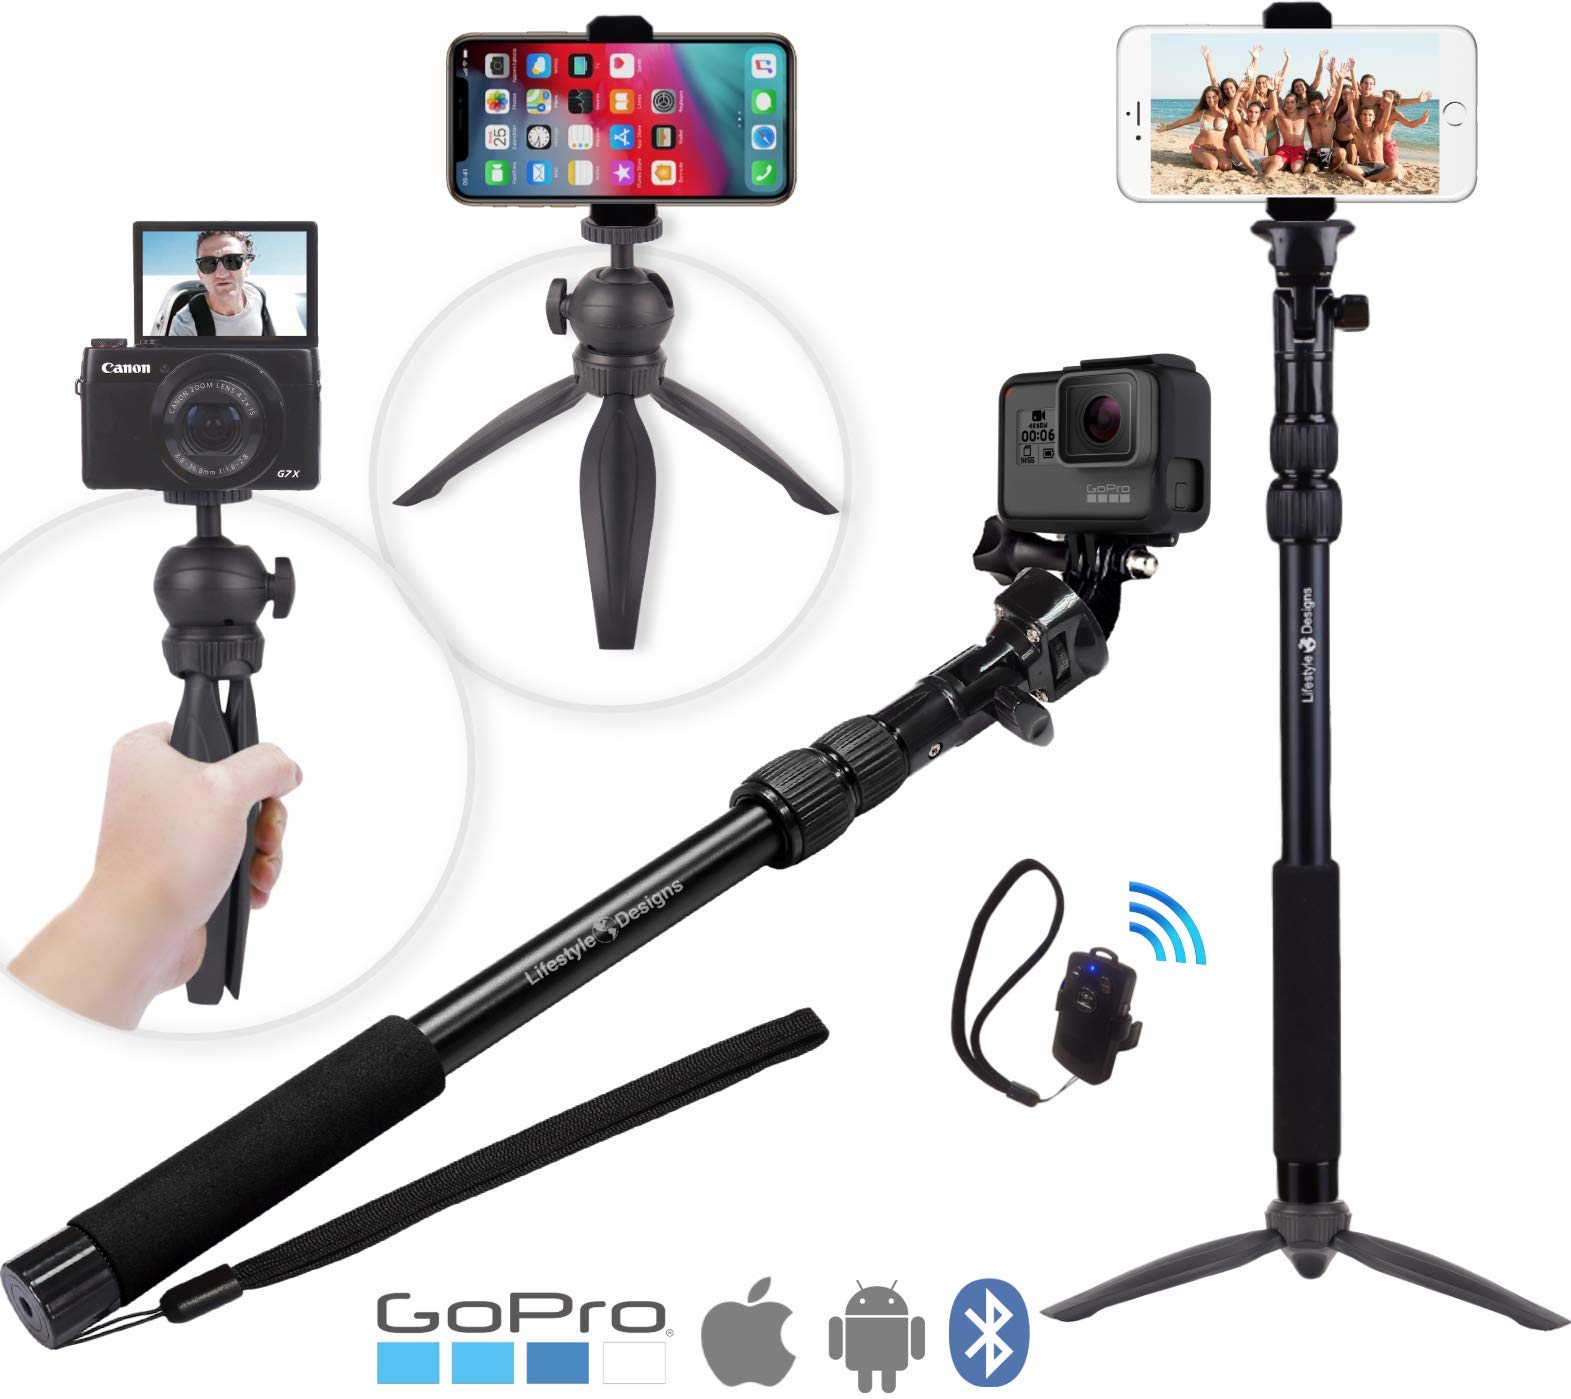 Premium HD Rugged 4-in-1 Selfie Stick Tripod Stand Kit + Bluetooth Remote - Universal: Any iPhone, Android, GoPro or Camera - iPhone Xs Max XS XR X 8 7 6 Plus, Samsung S9 etc. | Best Gift Pack by LifeStyle Designs